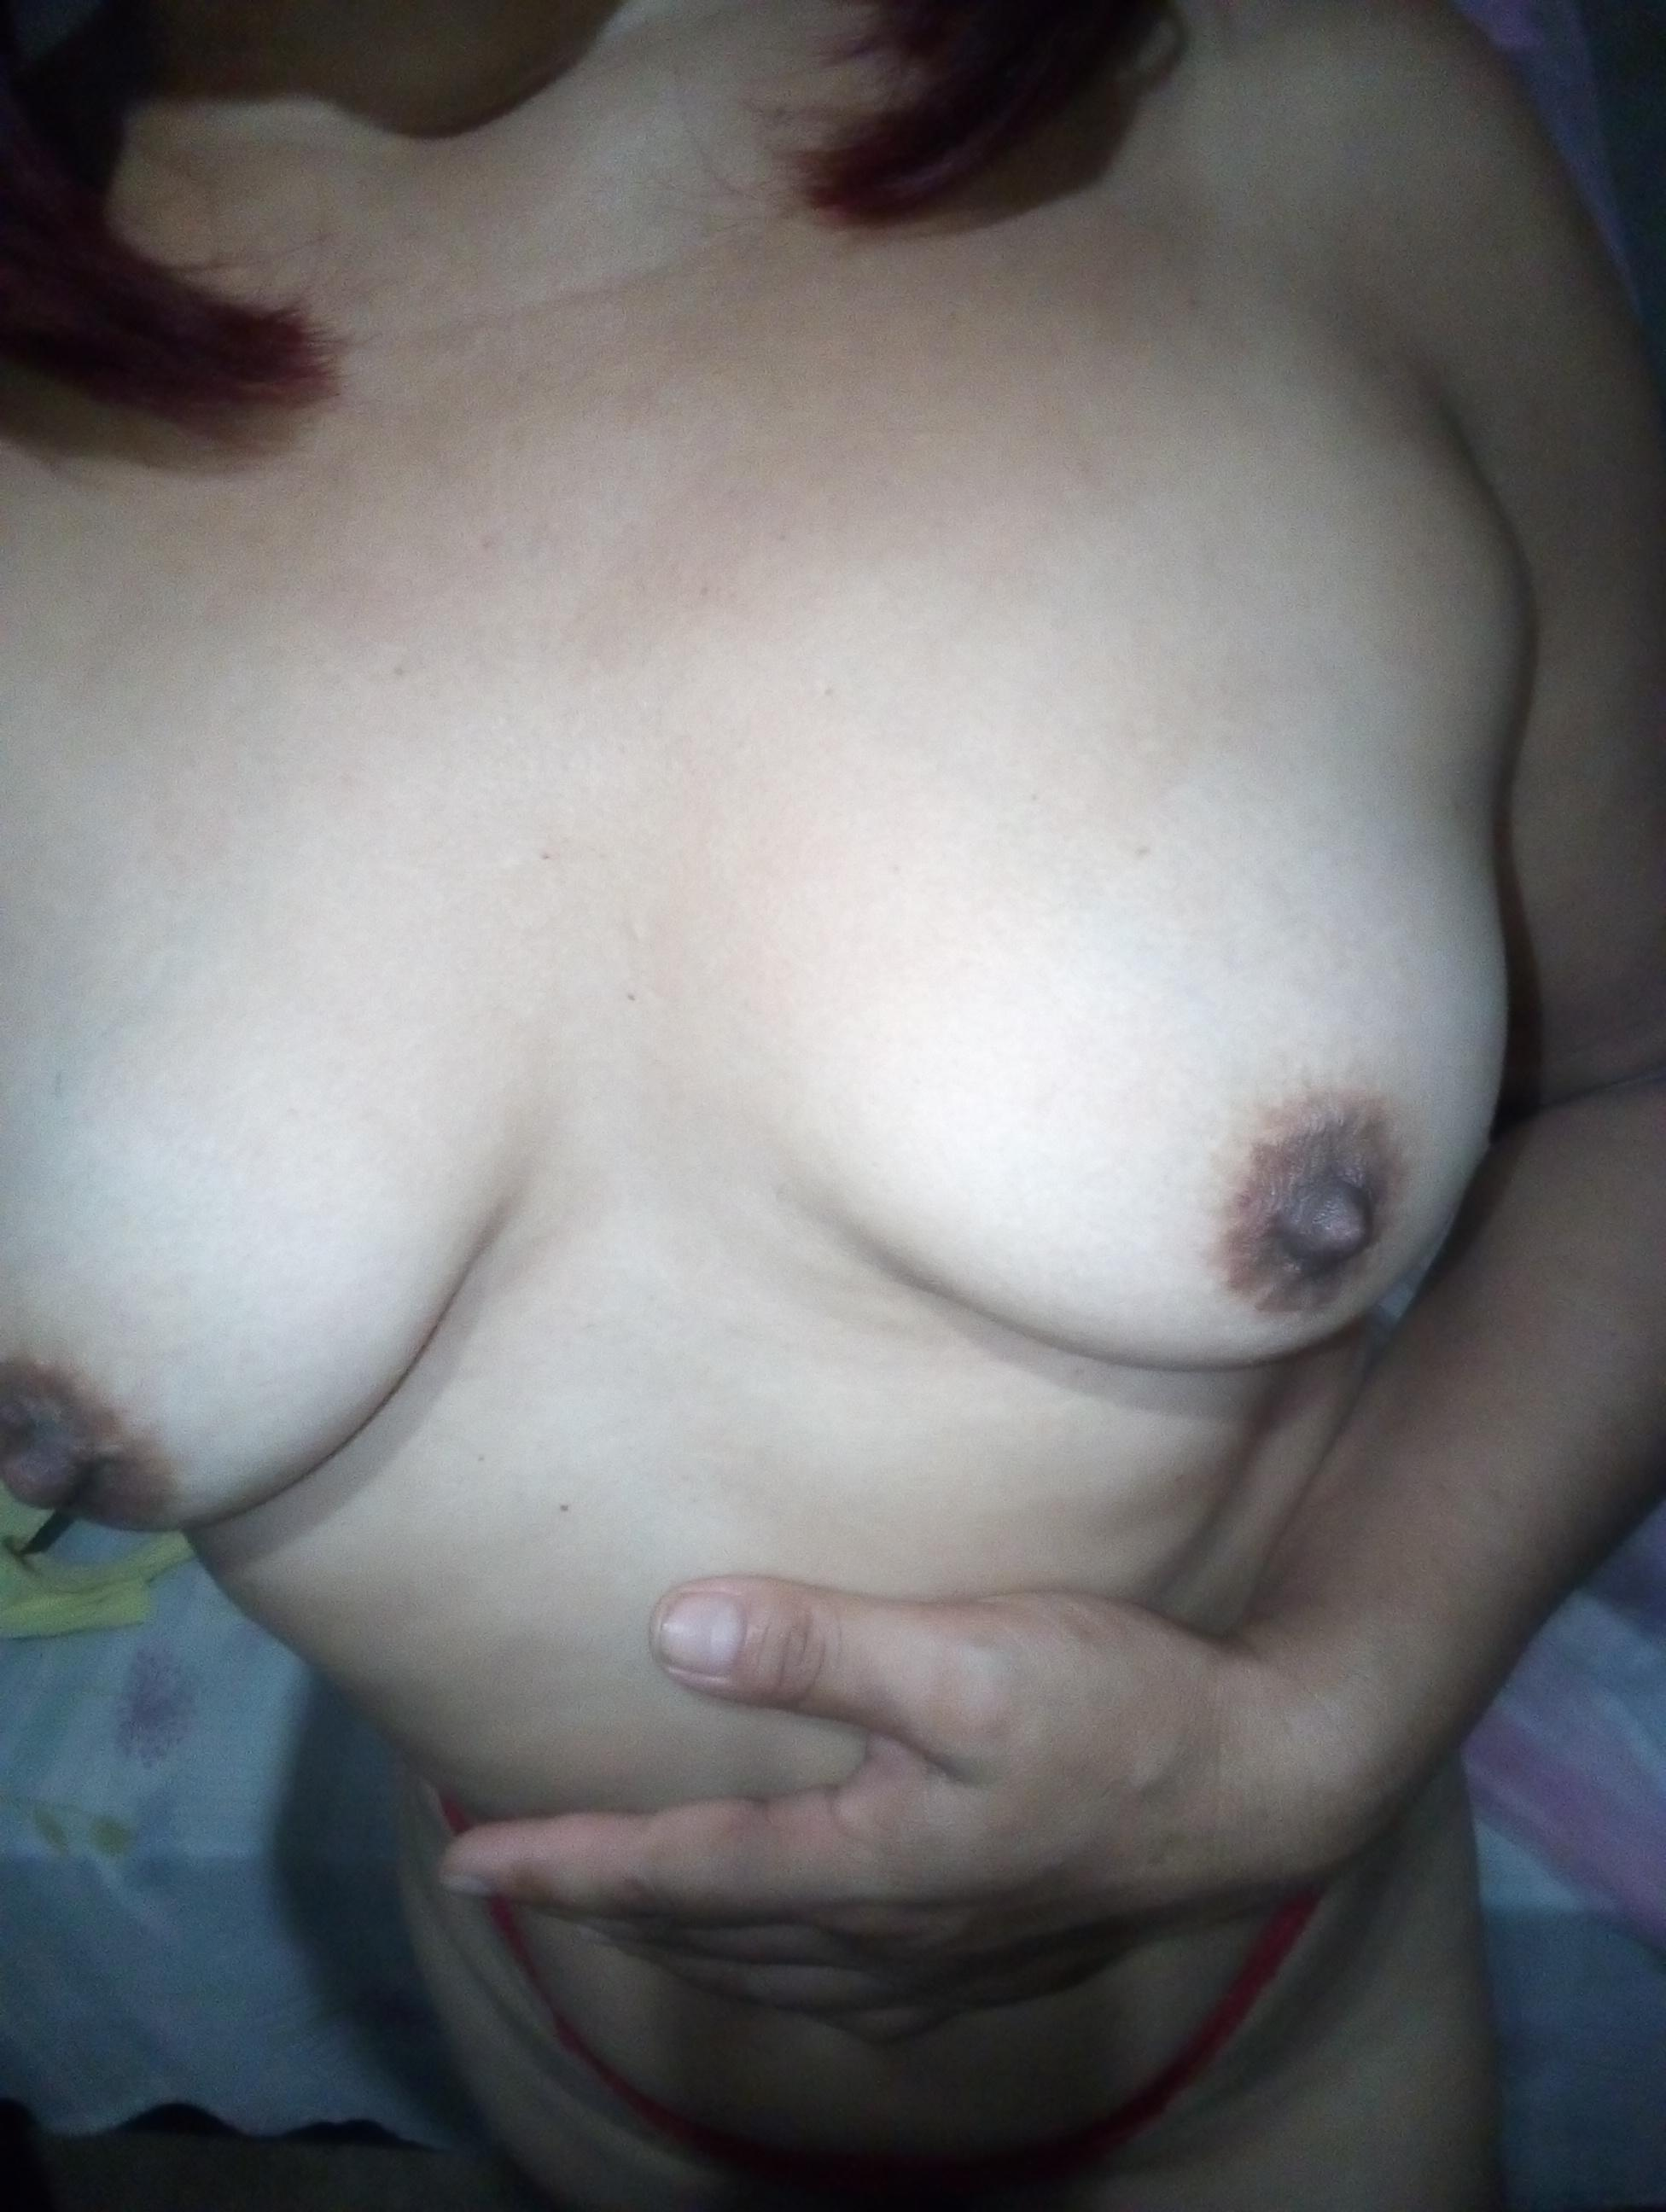 Picture with tags: Topless, Underwear, Video chat